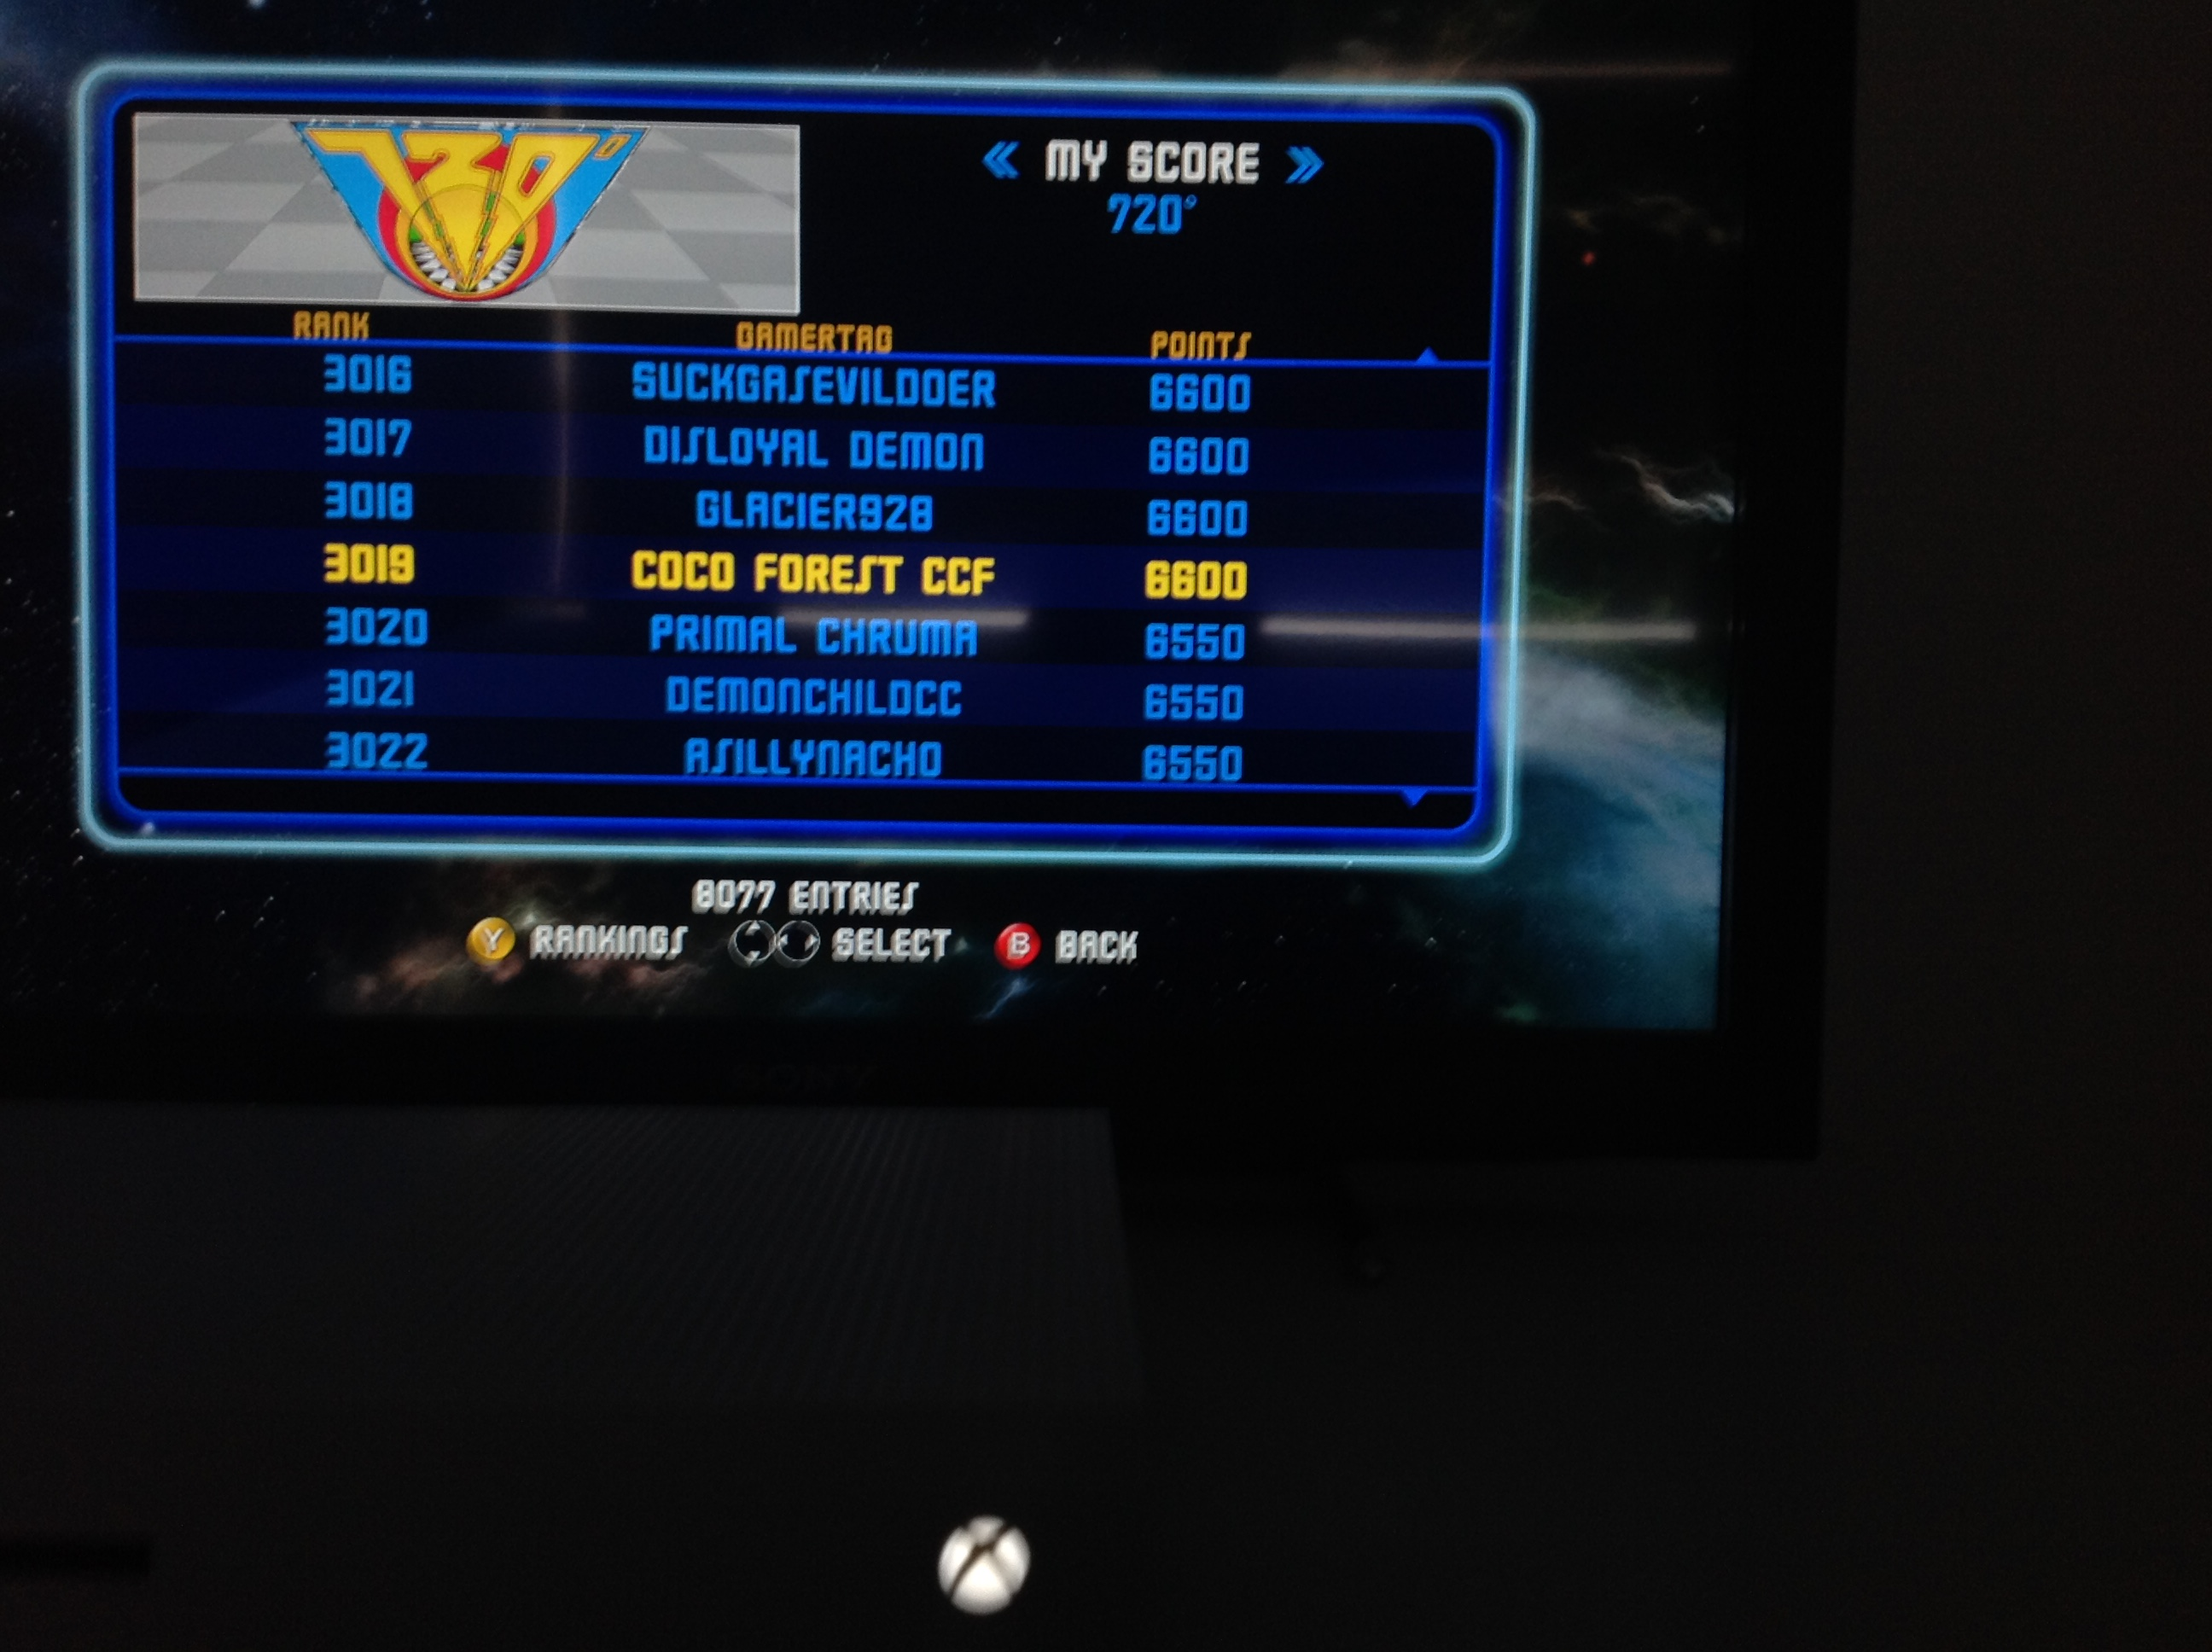 CoCoForest: Midway Arcade Origins: 720 (Xbox 360) 6,600 points on 2019-06-01 01:42:47